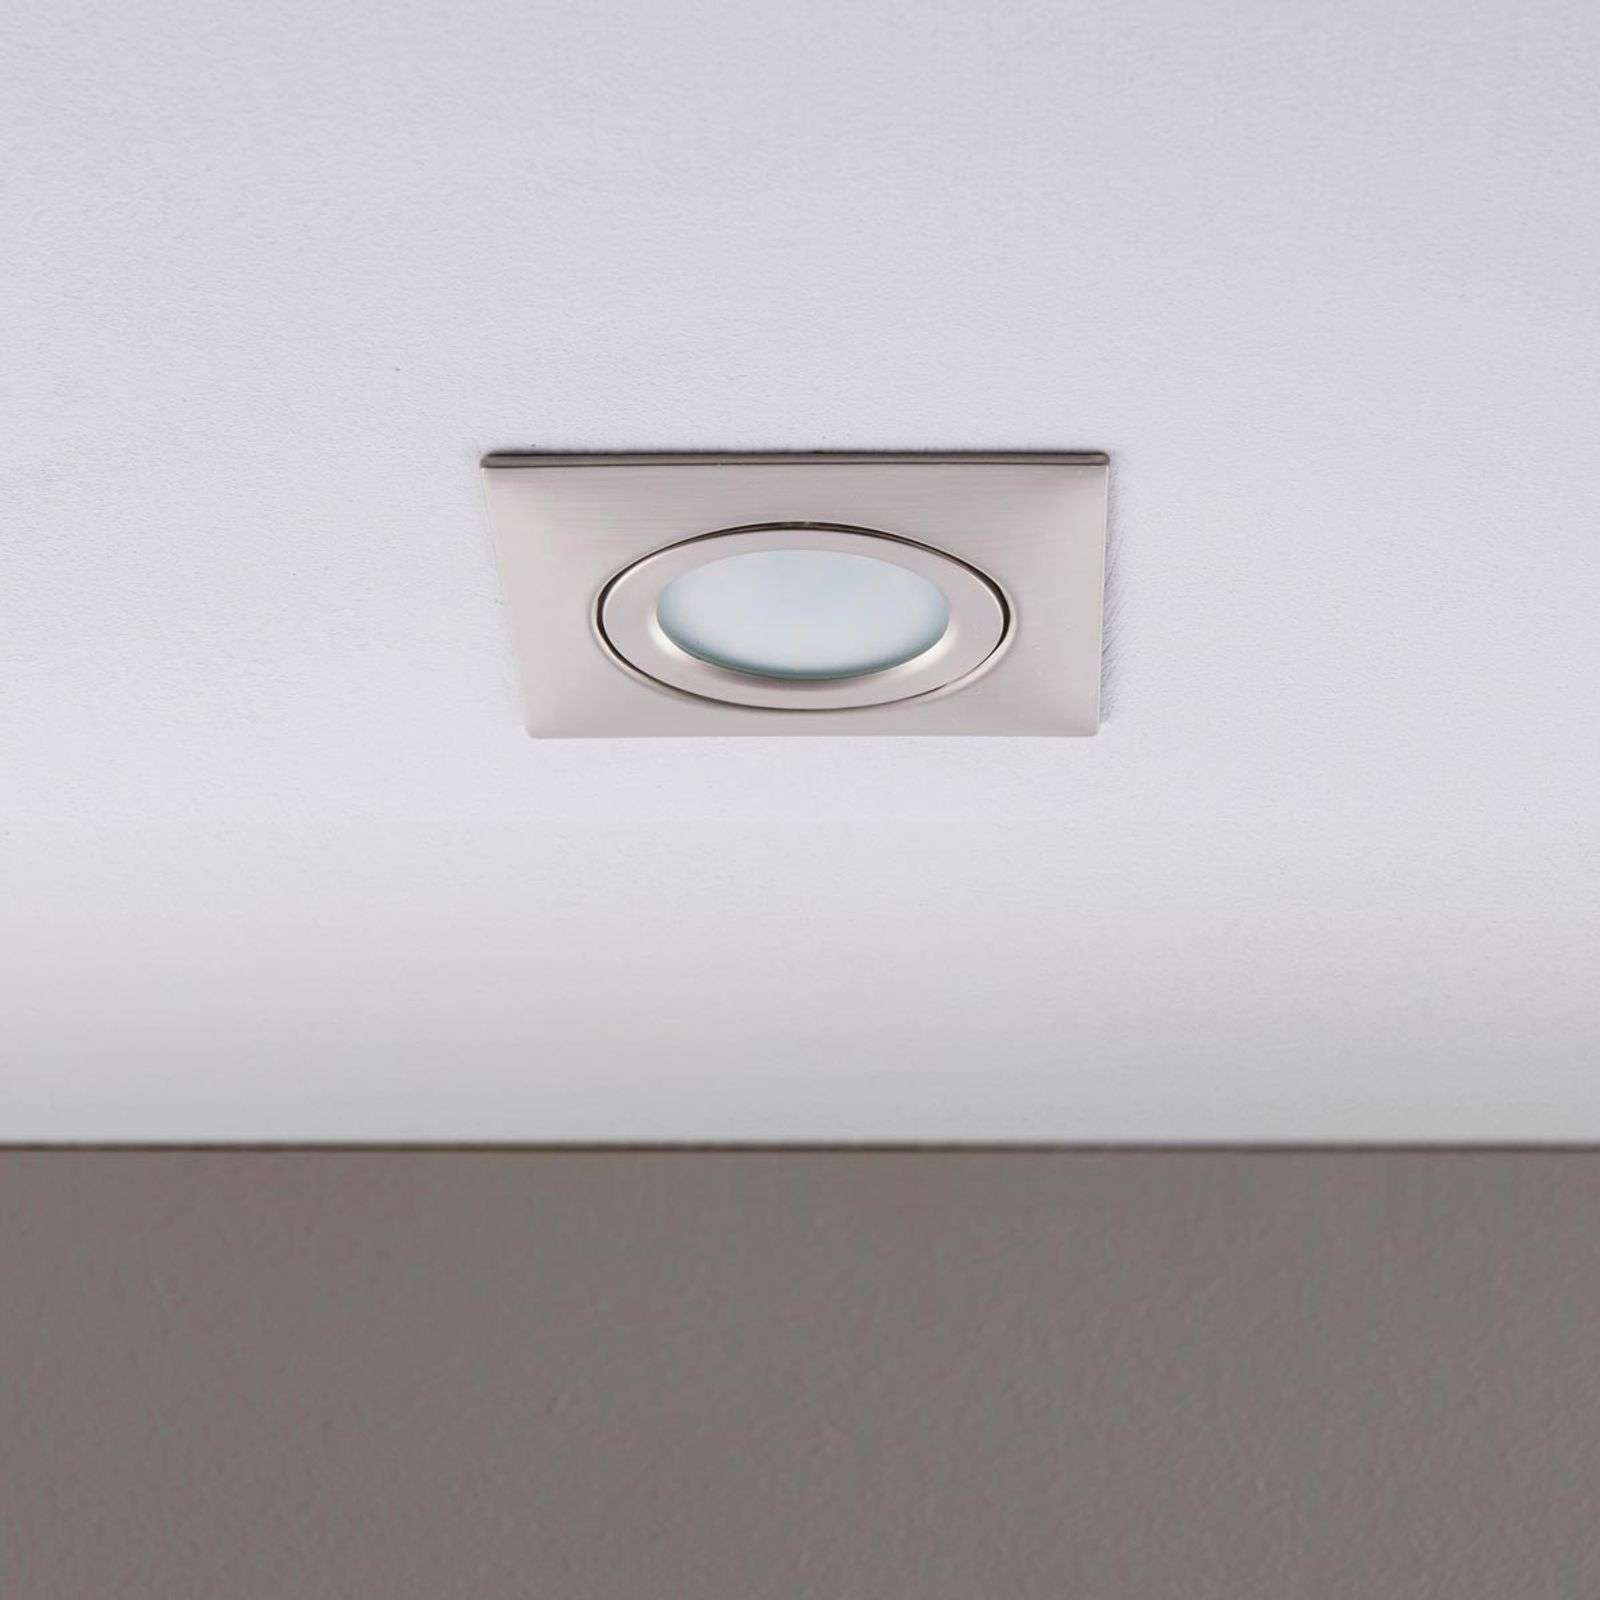 Nickel-coloured LED recessed ceiling light Andrej